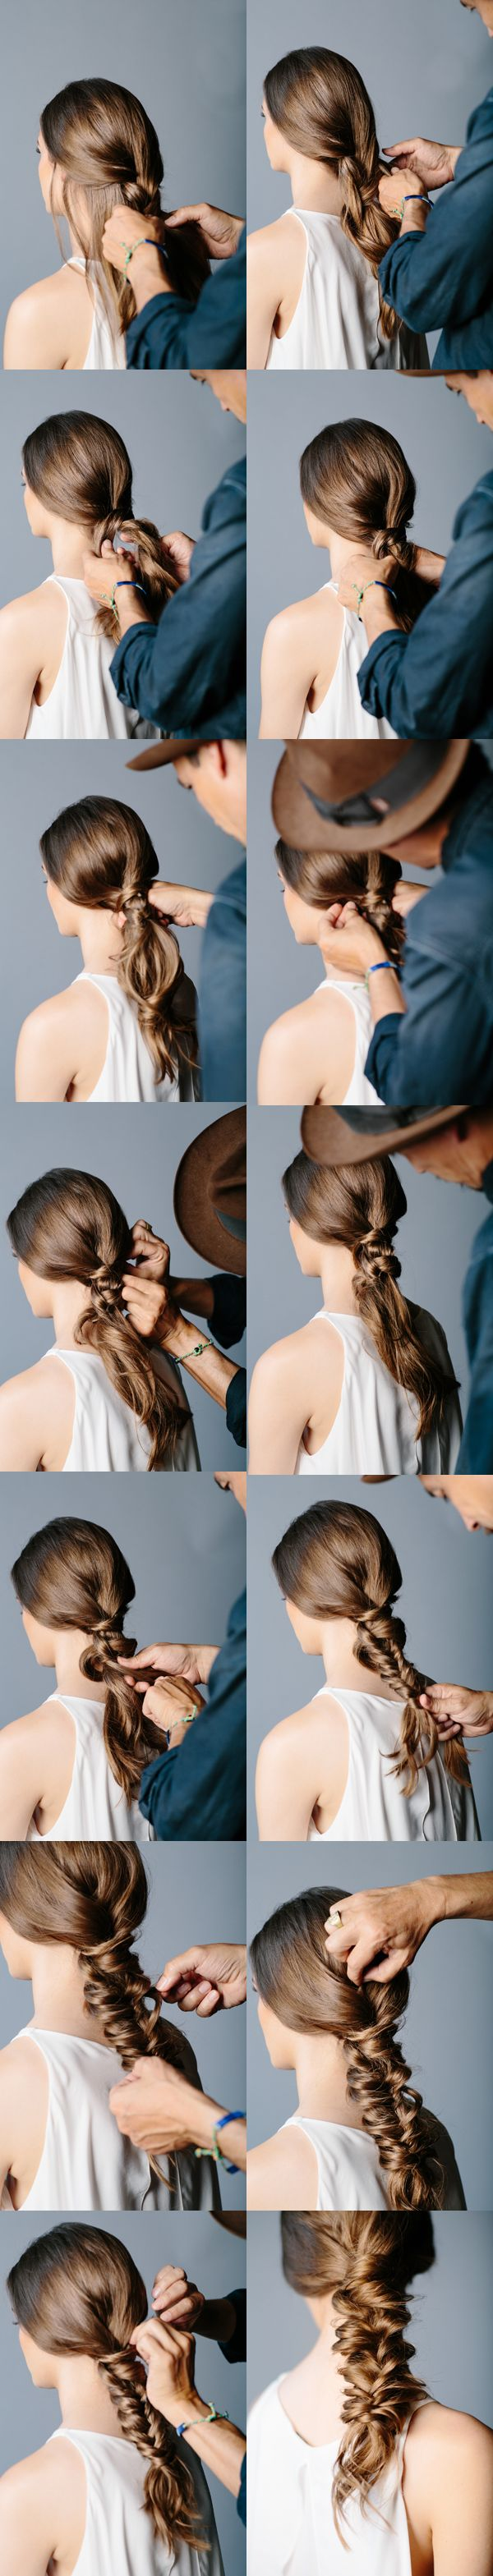 DIY Messy Fishtail Braid Wedding Hairstyles via oncewed.com